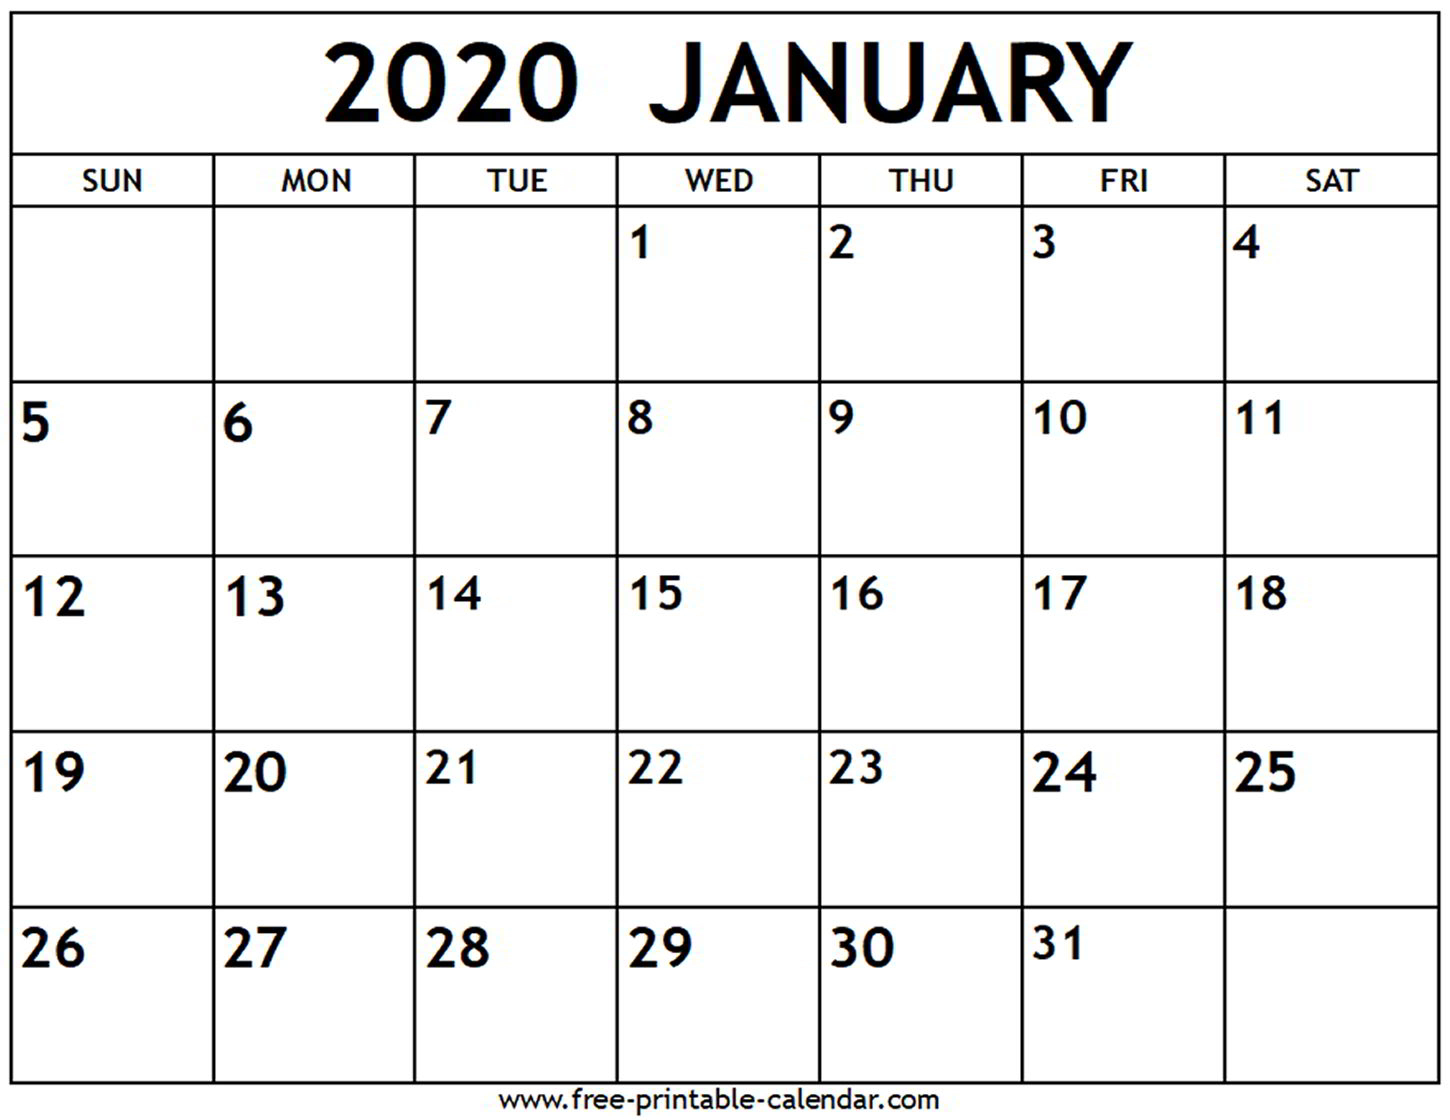 January 2020 Calendar  Freeprintablecalendar in Printable January 2020 Calendar